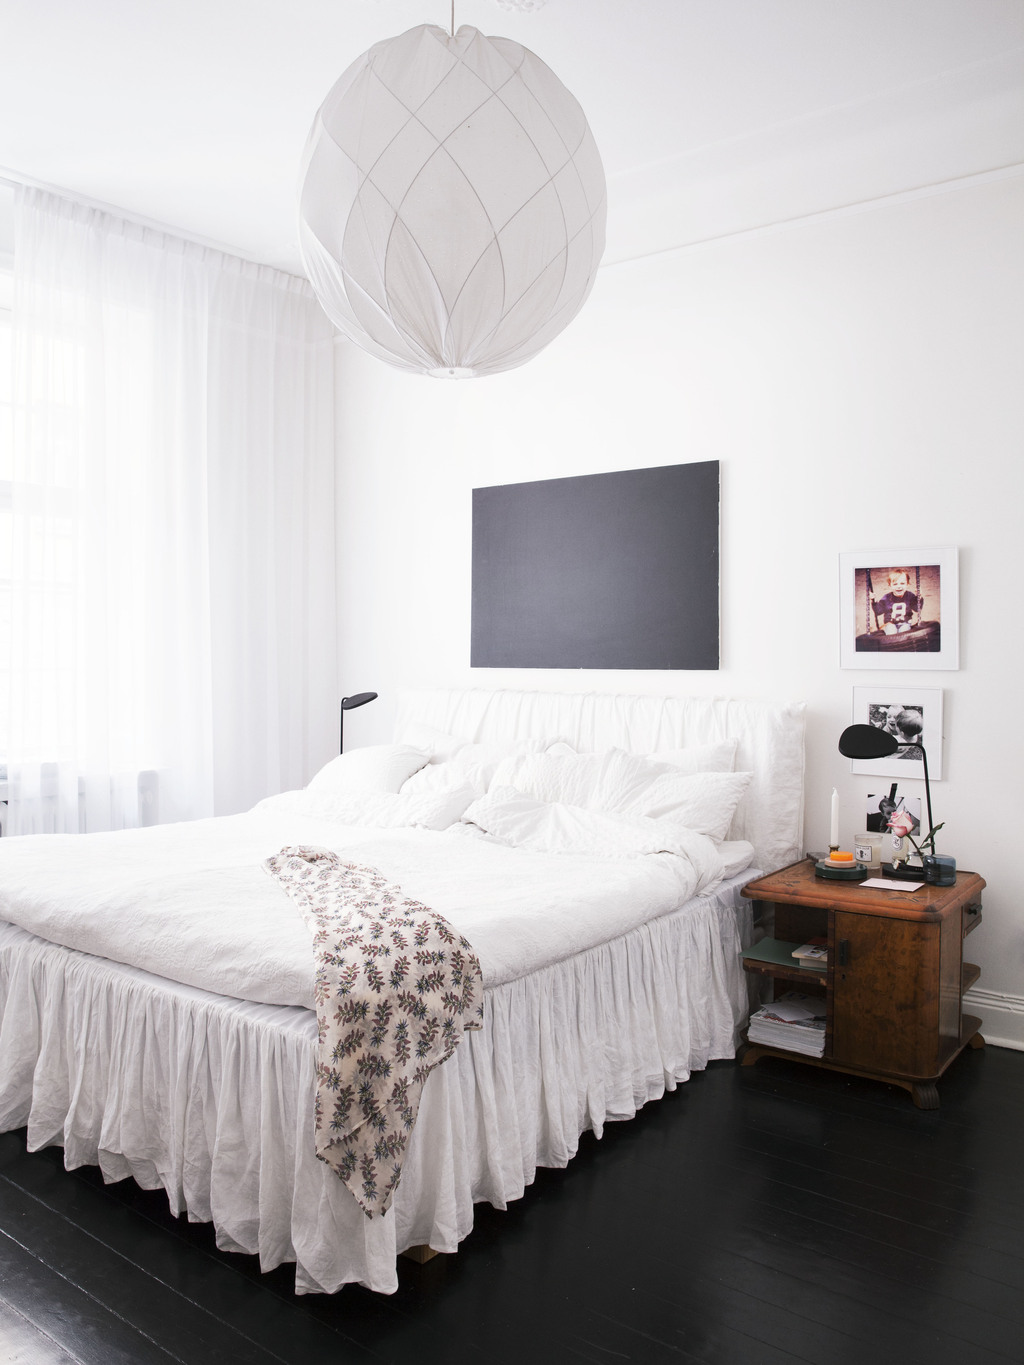 Hemma hos archives   [room] by sofie